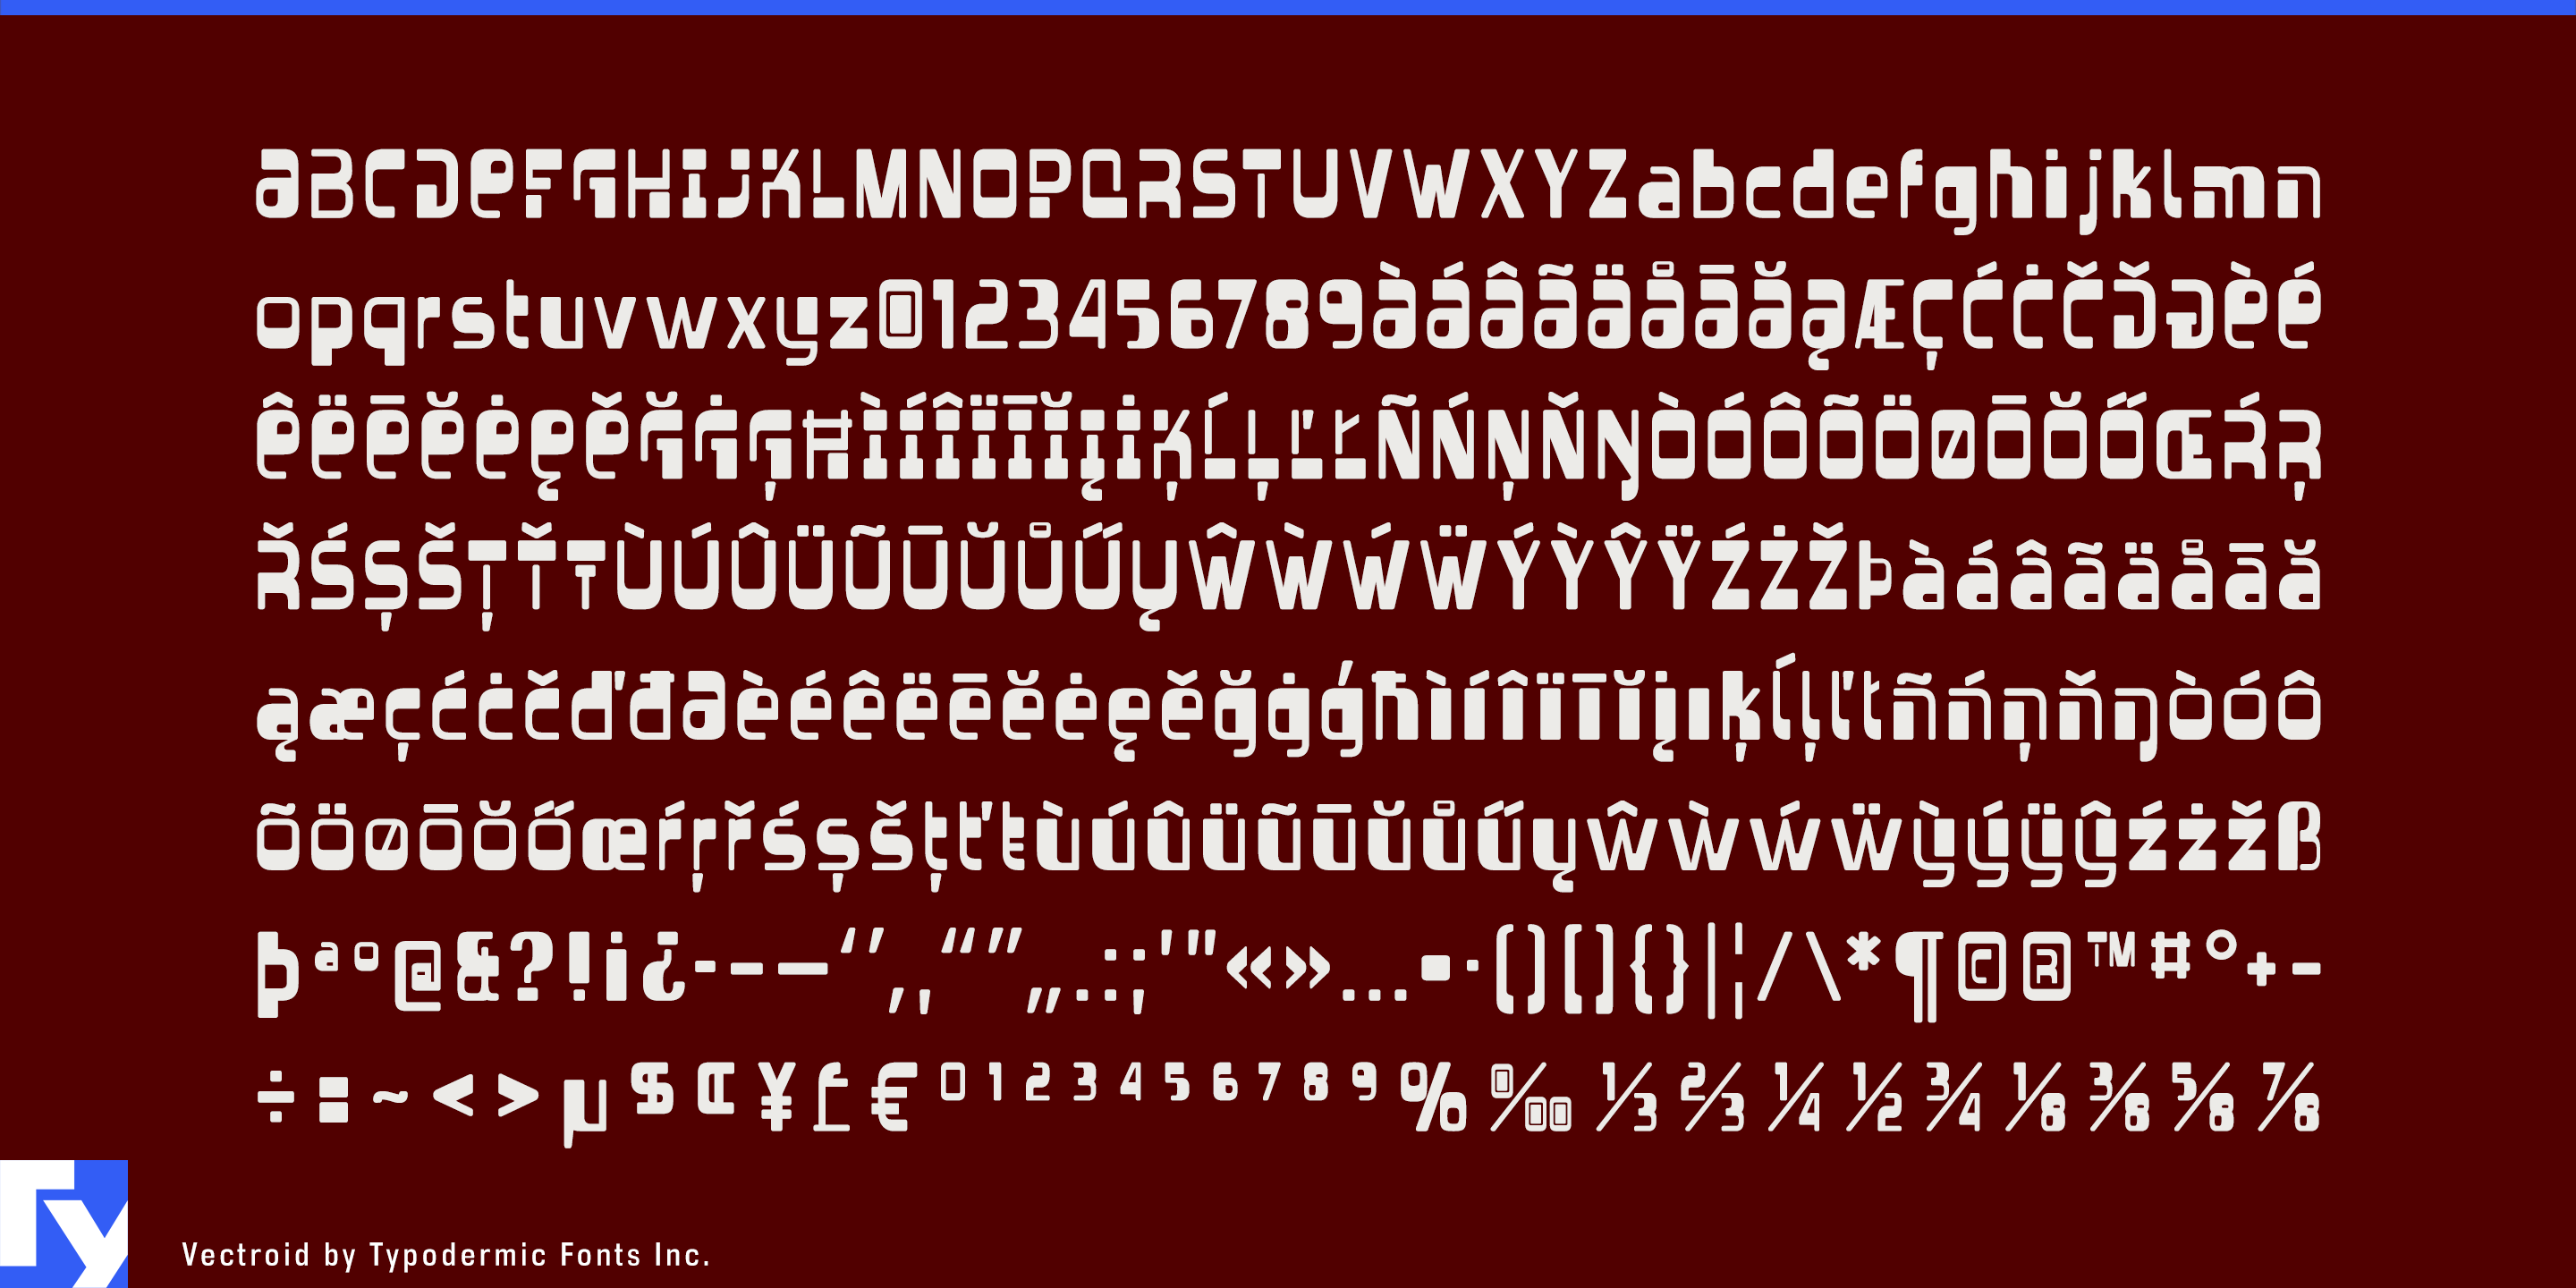 Vectroid typeface sample from Typodermic Fonts Inc.